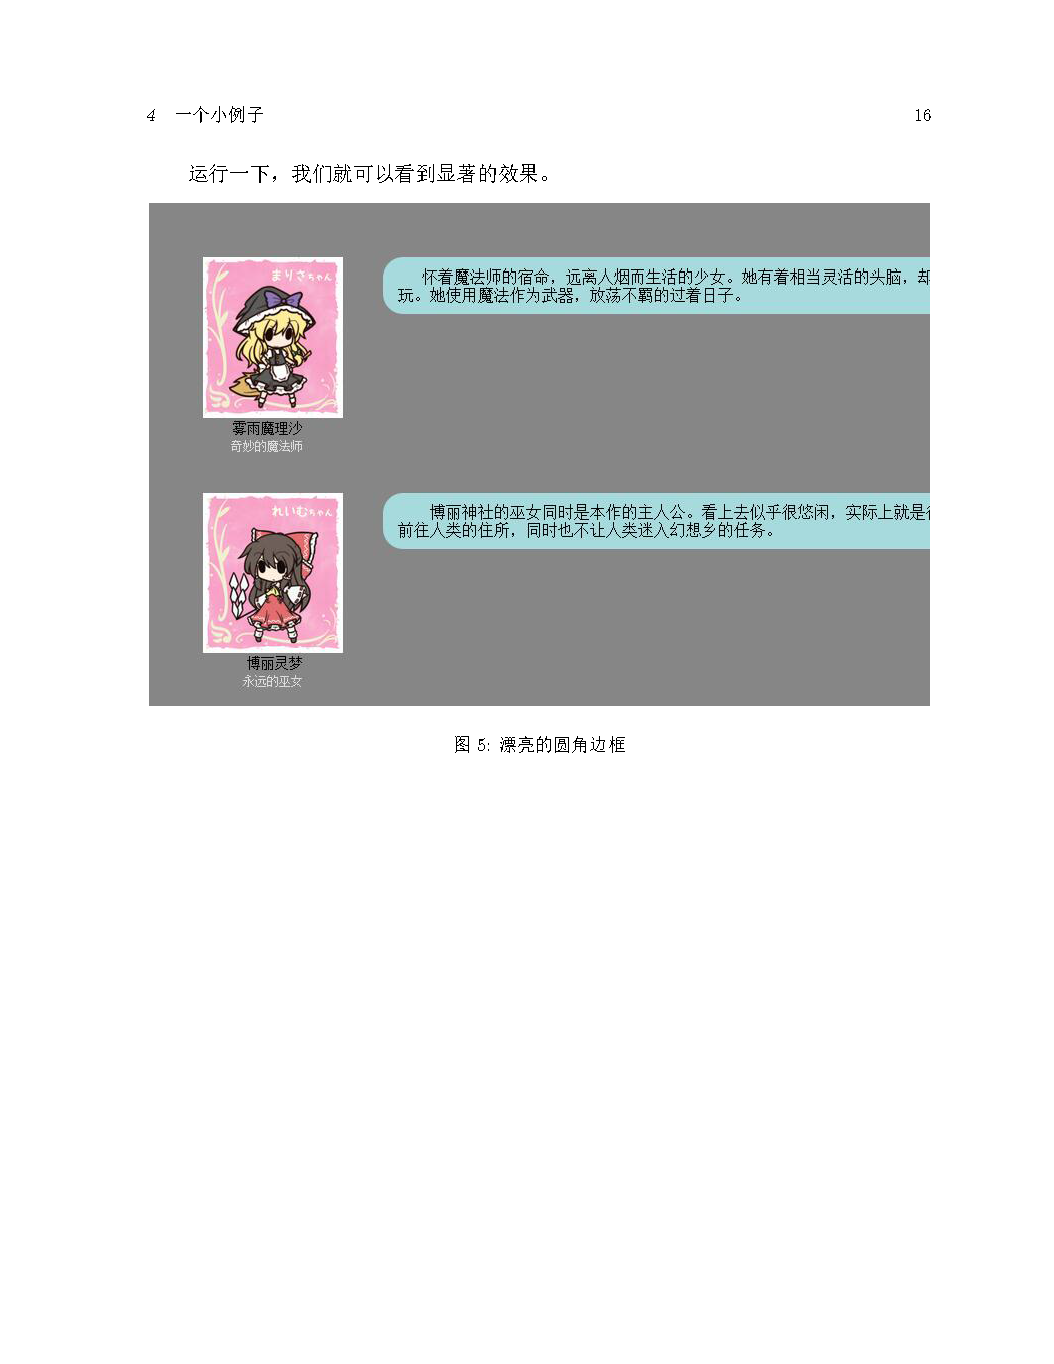 HTML5与CSS3_页面_16.png